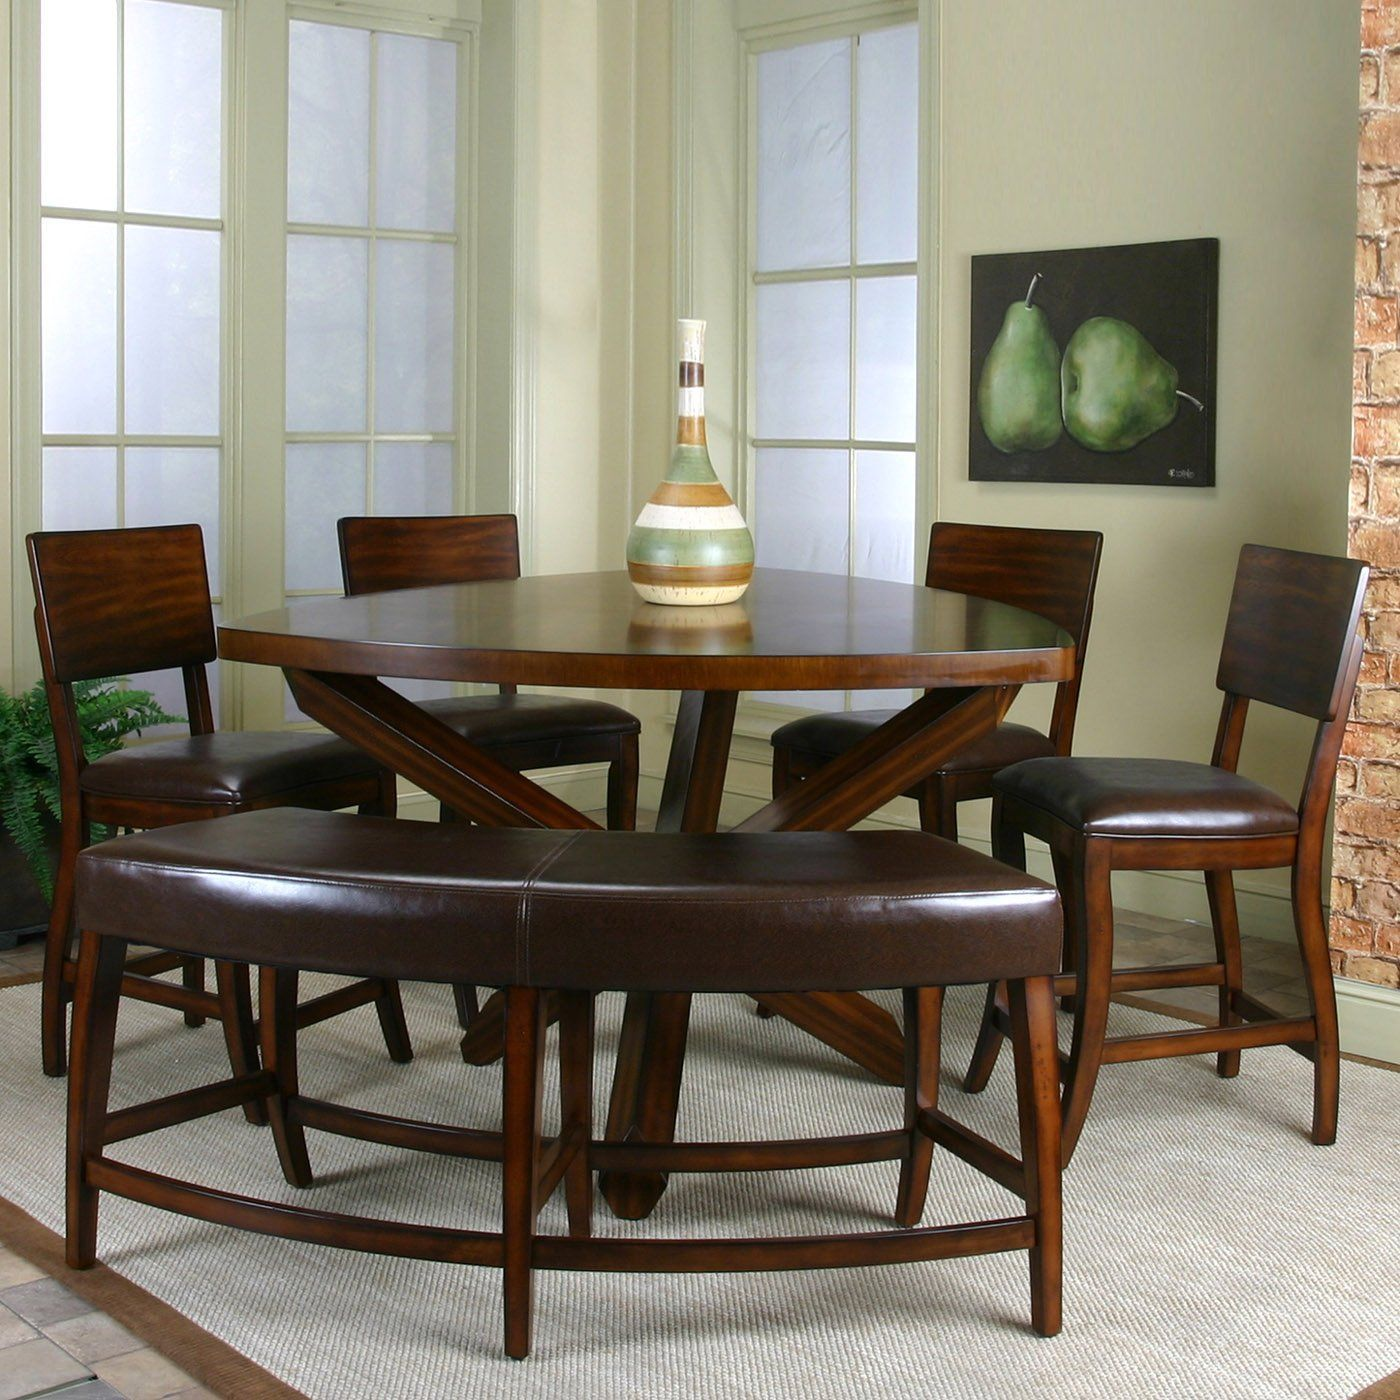 Kitchen table with bench seating and chairs  Kitchen table idea    I want a bench seat but I also like that